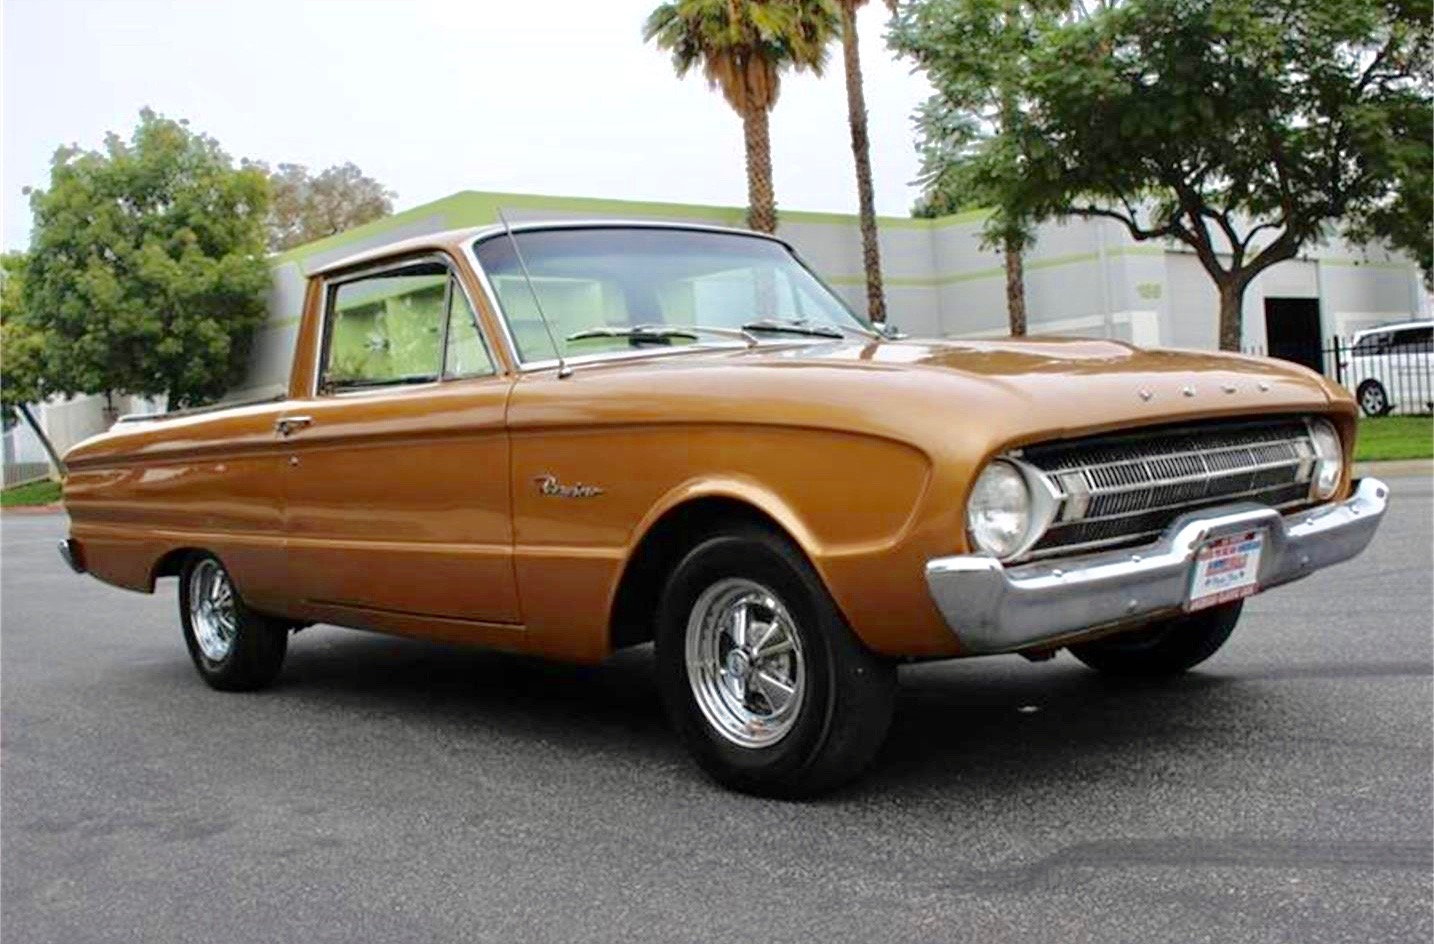 This Ranchero is back on the road after 30-year slumber